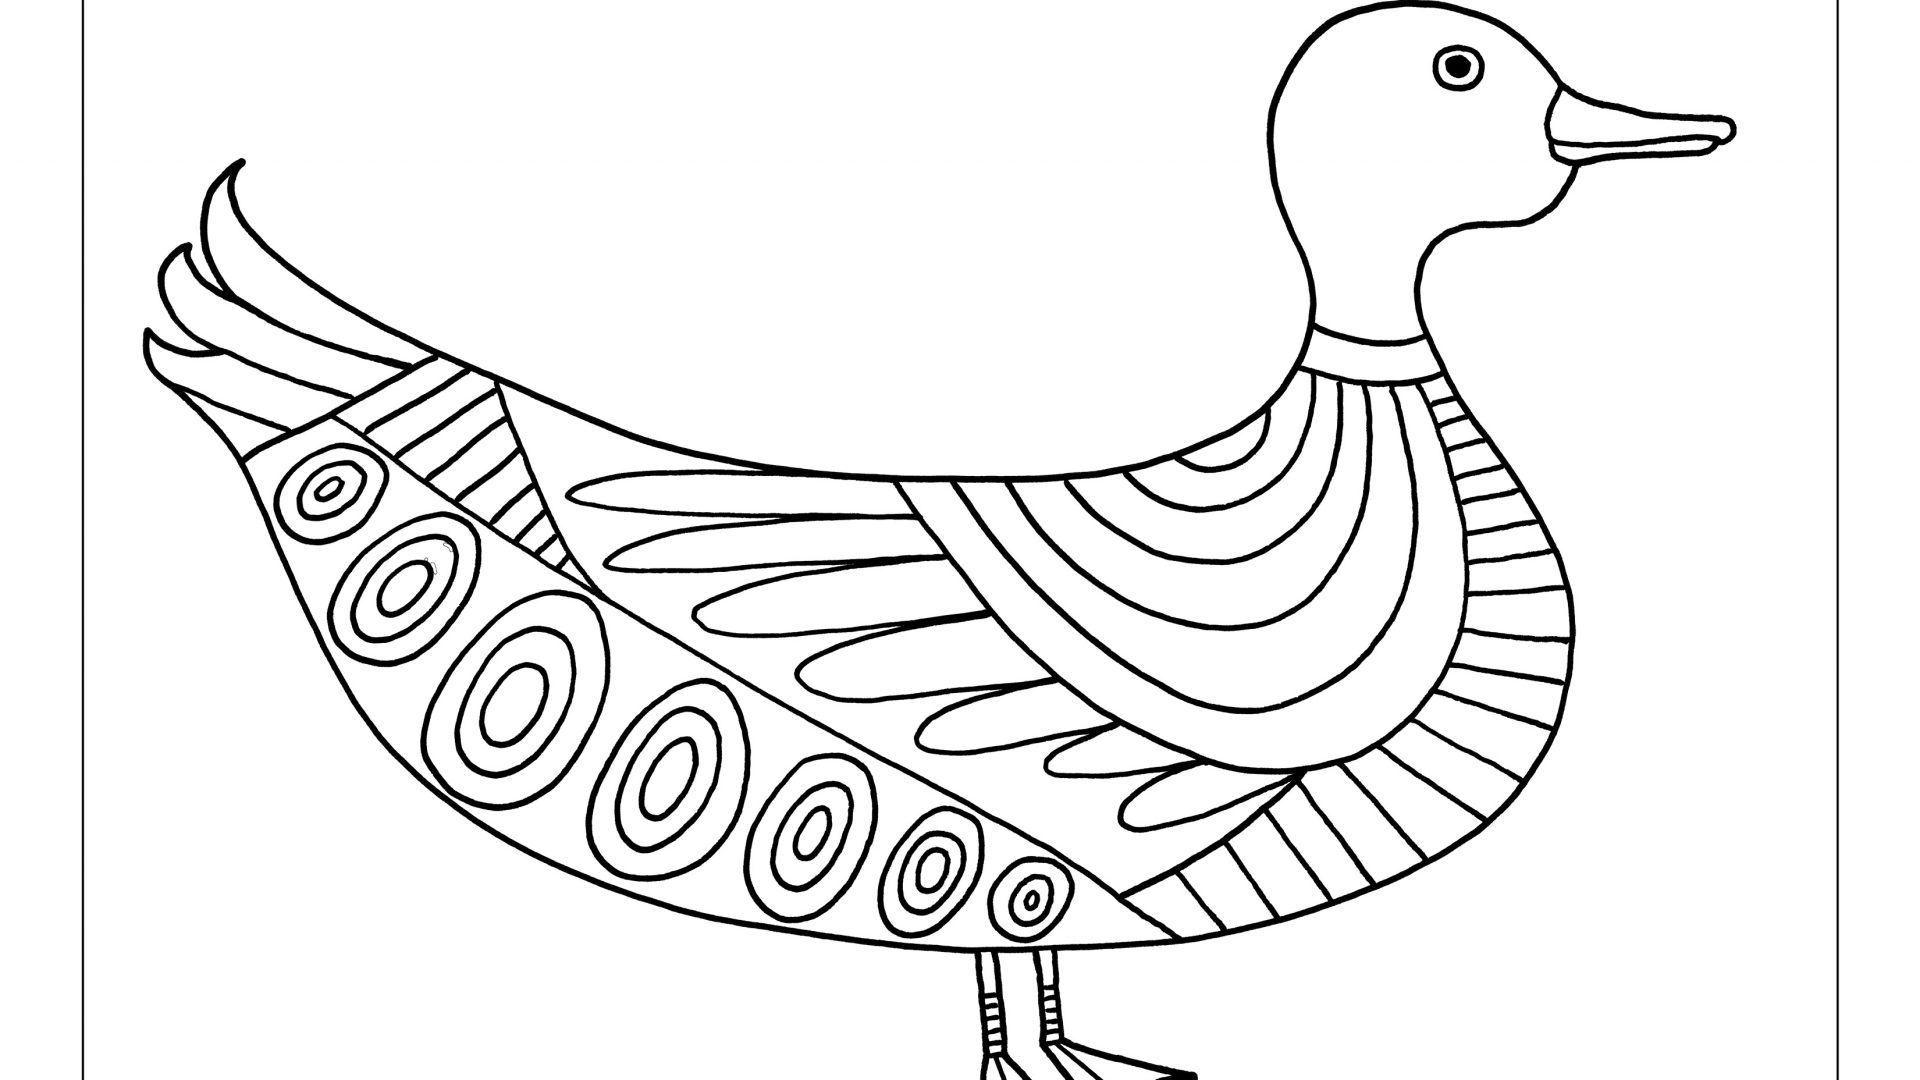 1920x1080 Coloring Pages For 4 Year Old Sheets Free Printable Kids 3 4 Boy